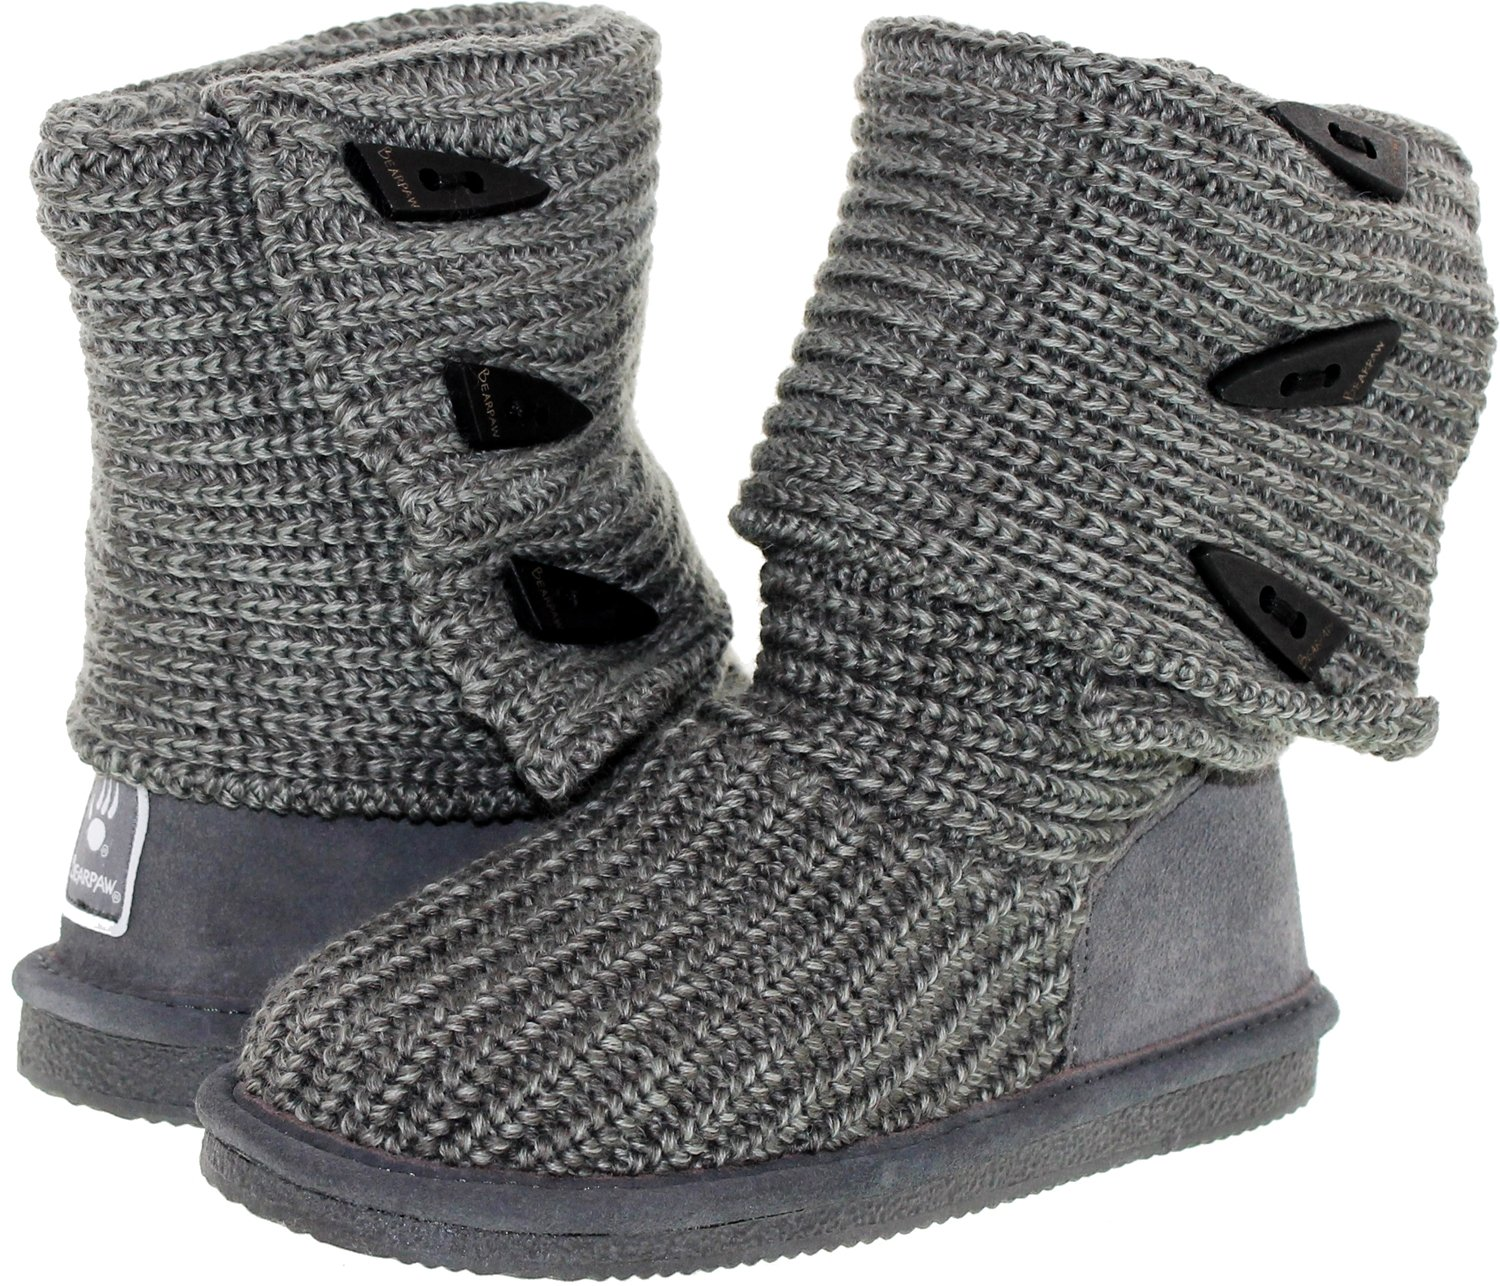 BEARPAW Women's Knit Tall B077W4FMQC 41 M EU / 10 B(M) US|Gray